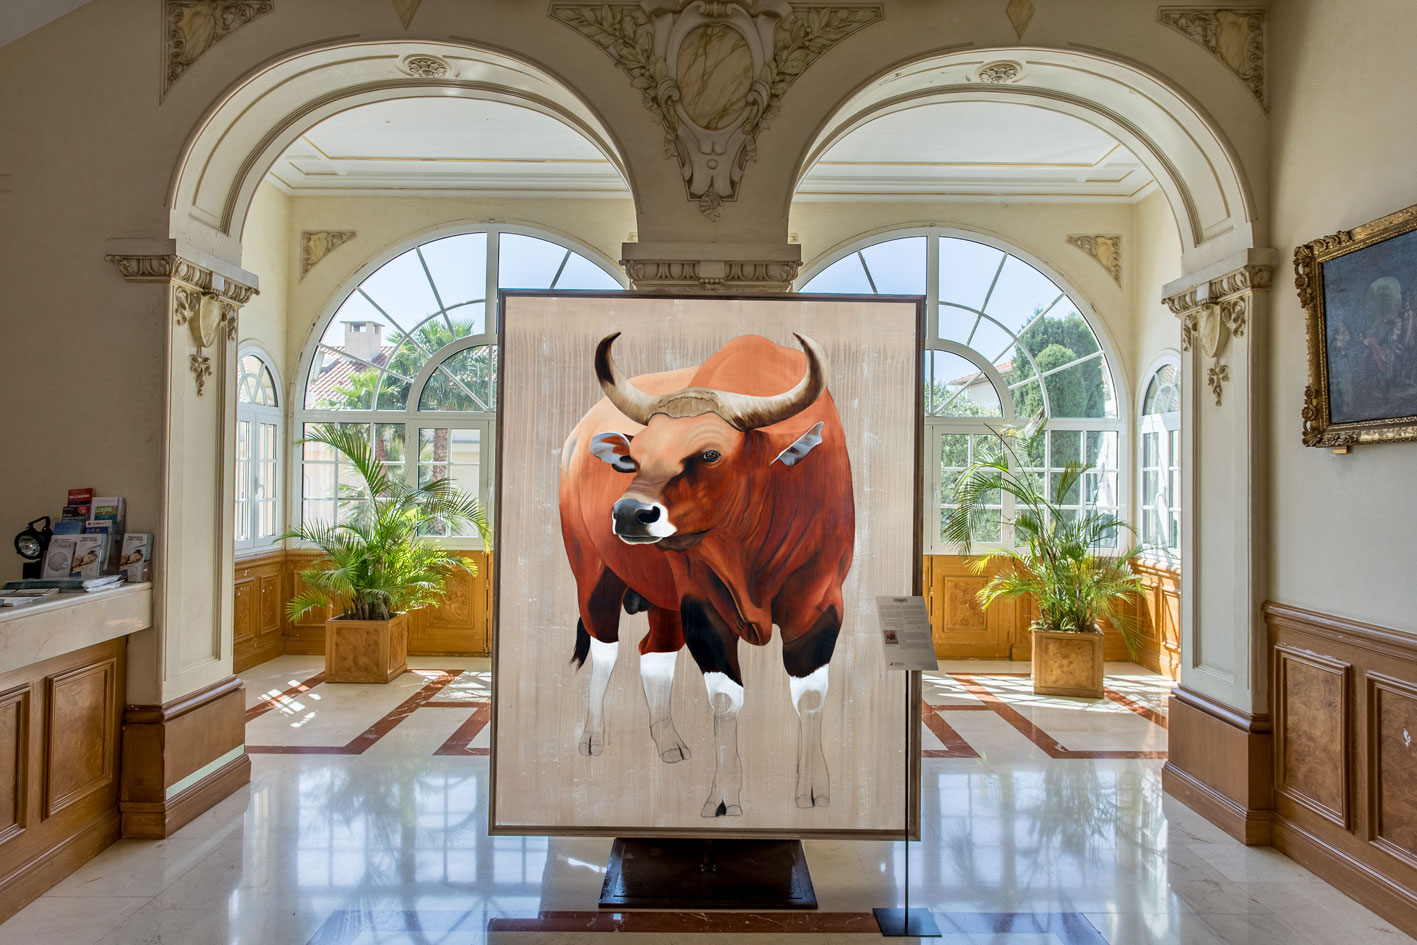 MAIRIE DE MONACO banteng-bos-javanicus-asian-red-bull-threatened-endangered-extinction Thierry Bisch painter animals painting art decoration hotel design interior luxury nature biodiversity conservation